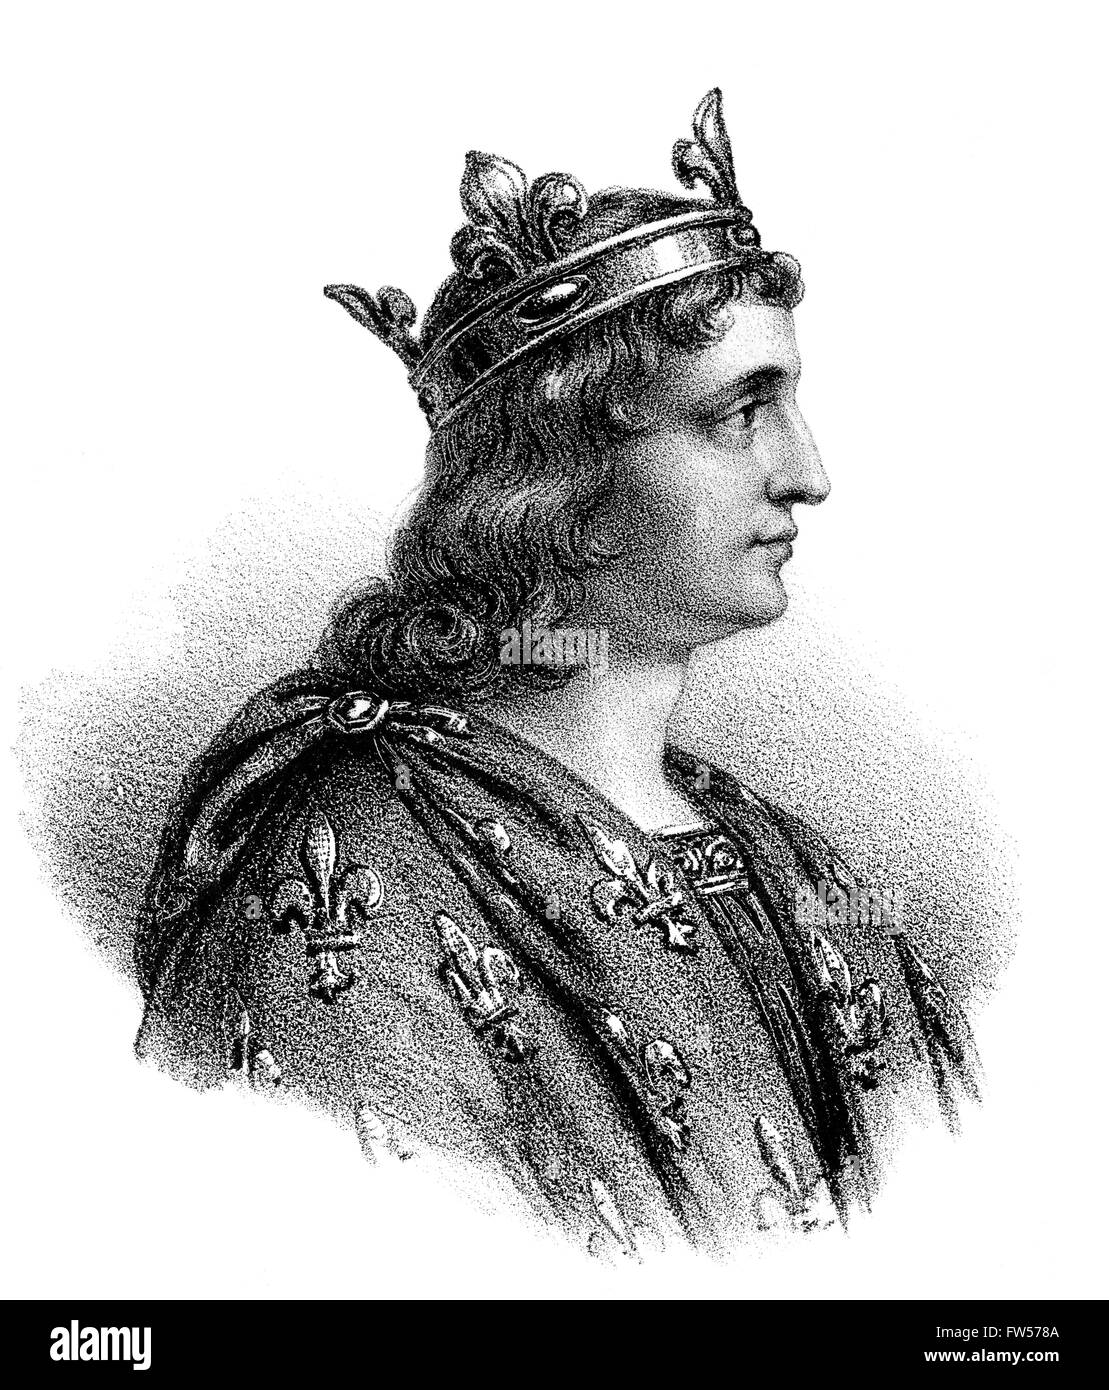 Louis V, appelé le paresseux ; c. 966/67-987, roi de Francia Occidentale Photo Stock